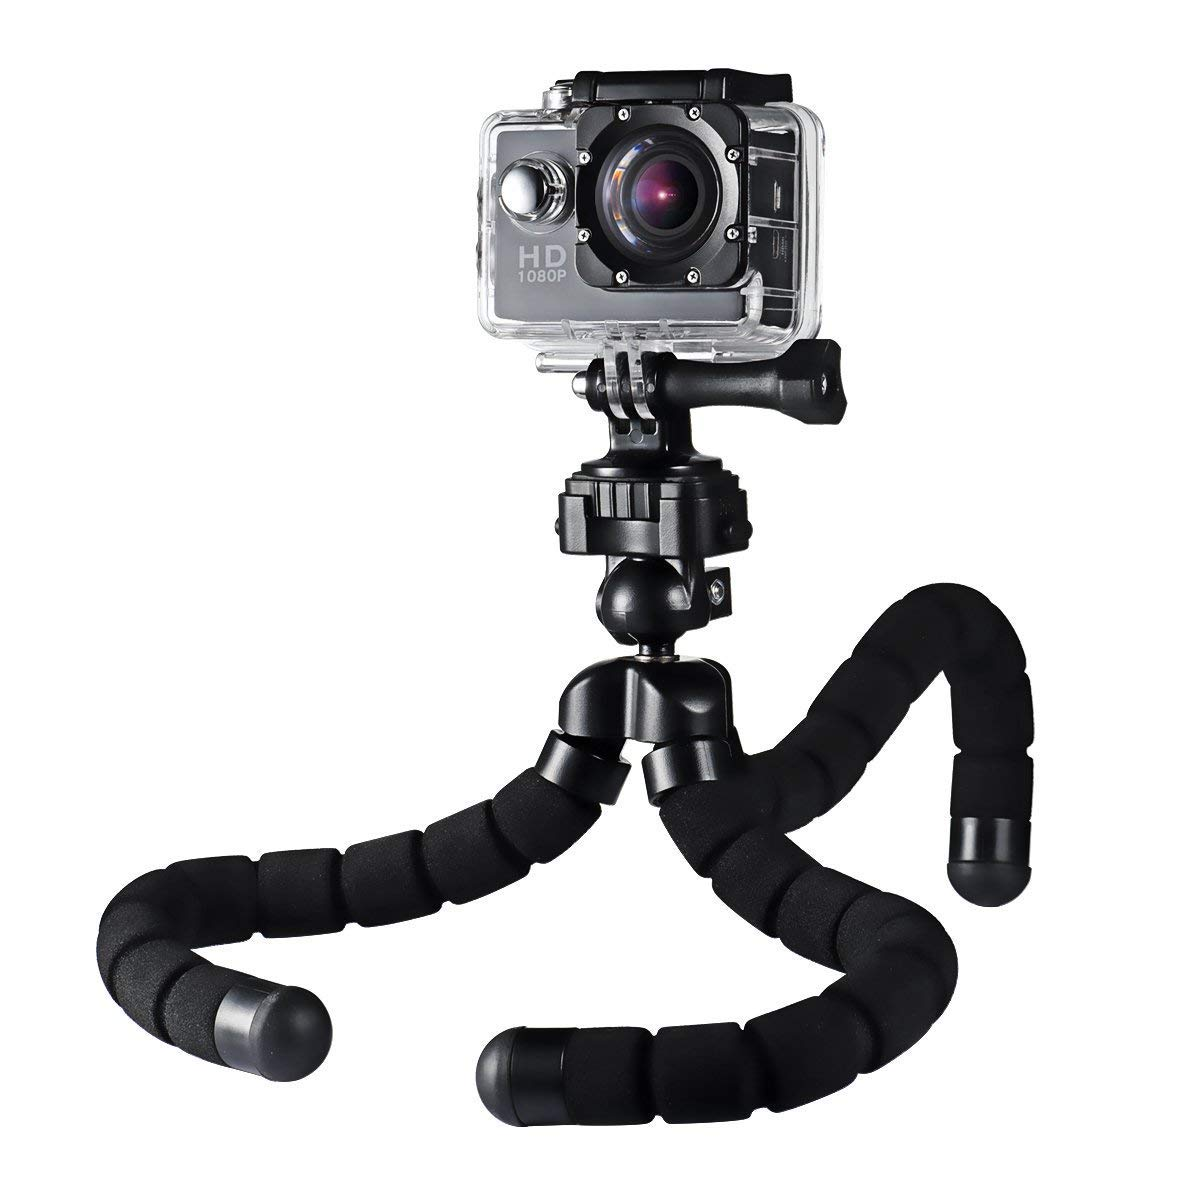 AUKEY Camera Tripod Mini Flexible Compact 360 Degrees with 1/4'' Screw Phone Holder for Smartphones, Video Stand for GoPro, DSLR Digital Camera and More